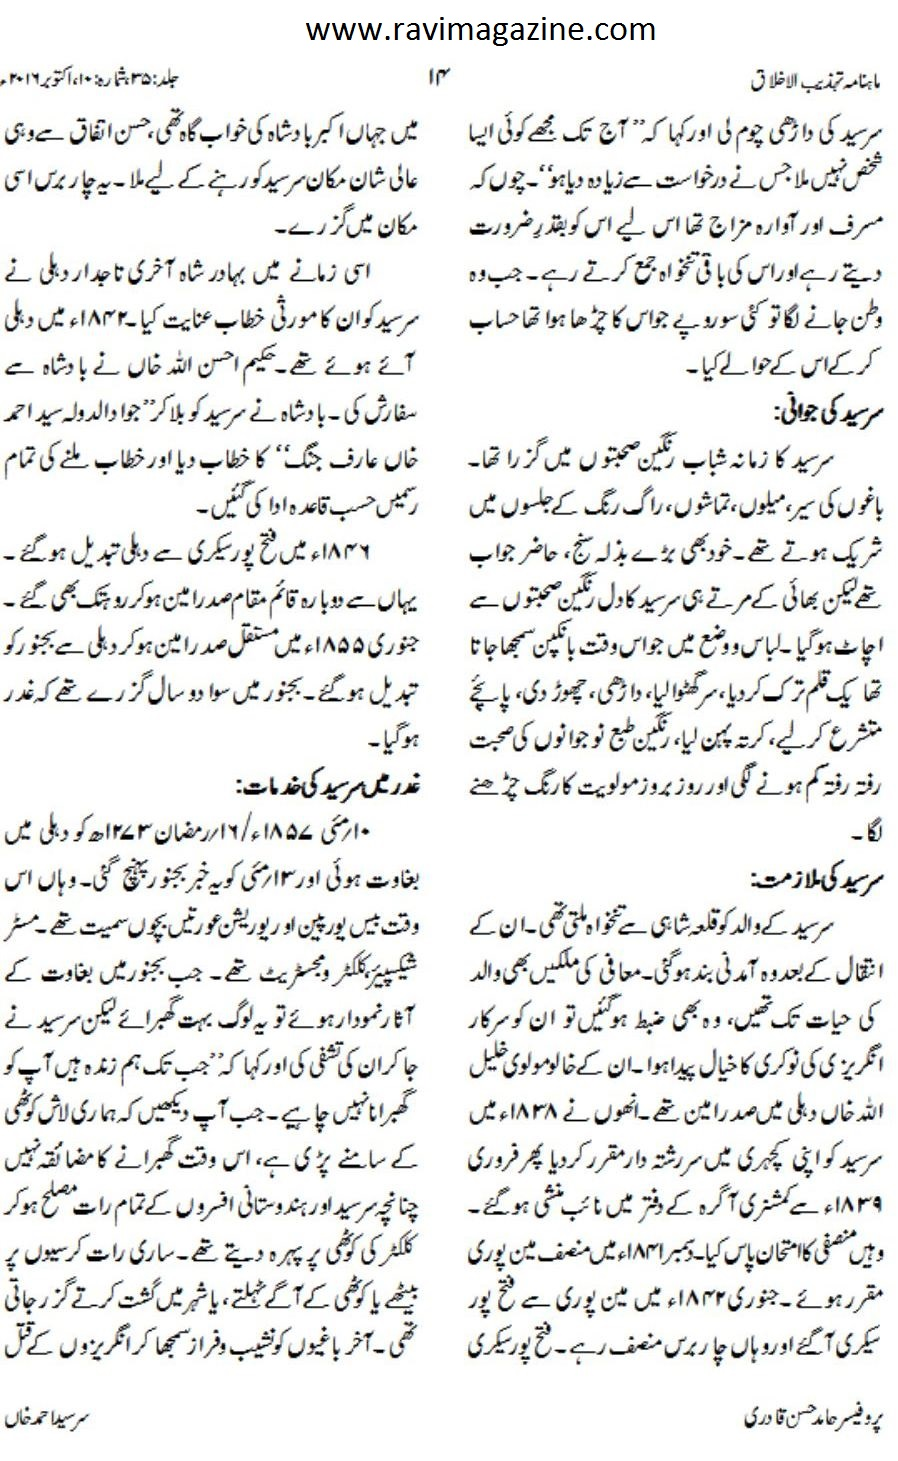 sir syed ahmed khan ki halat e zindagi in urdu